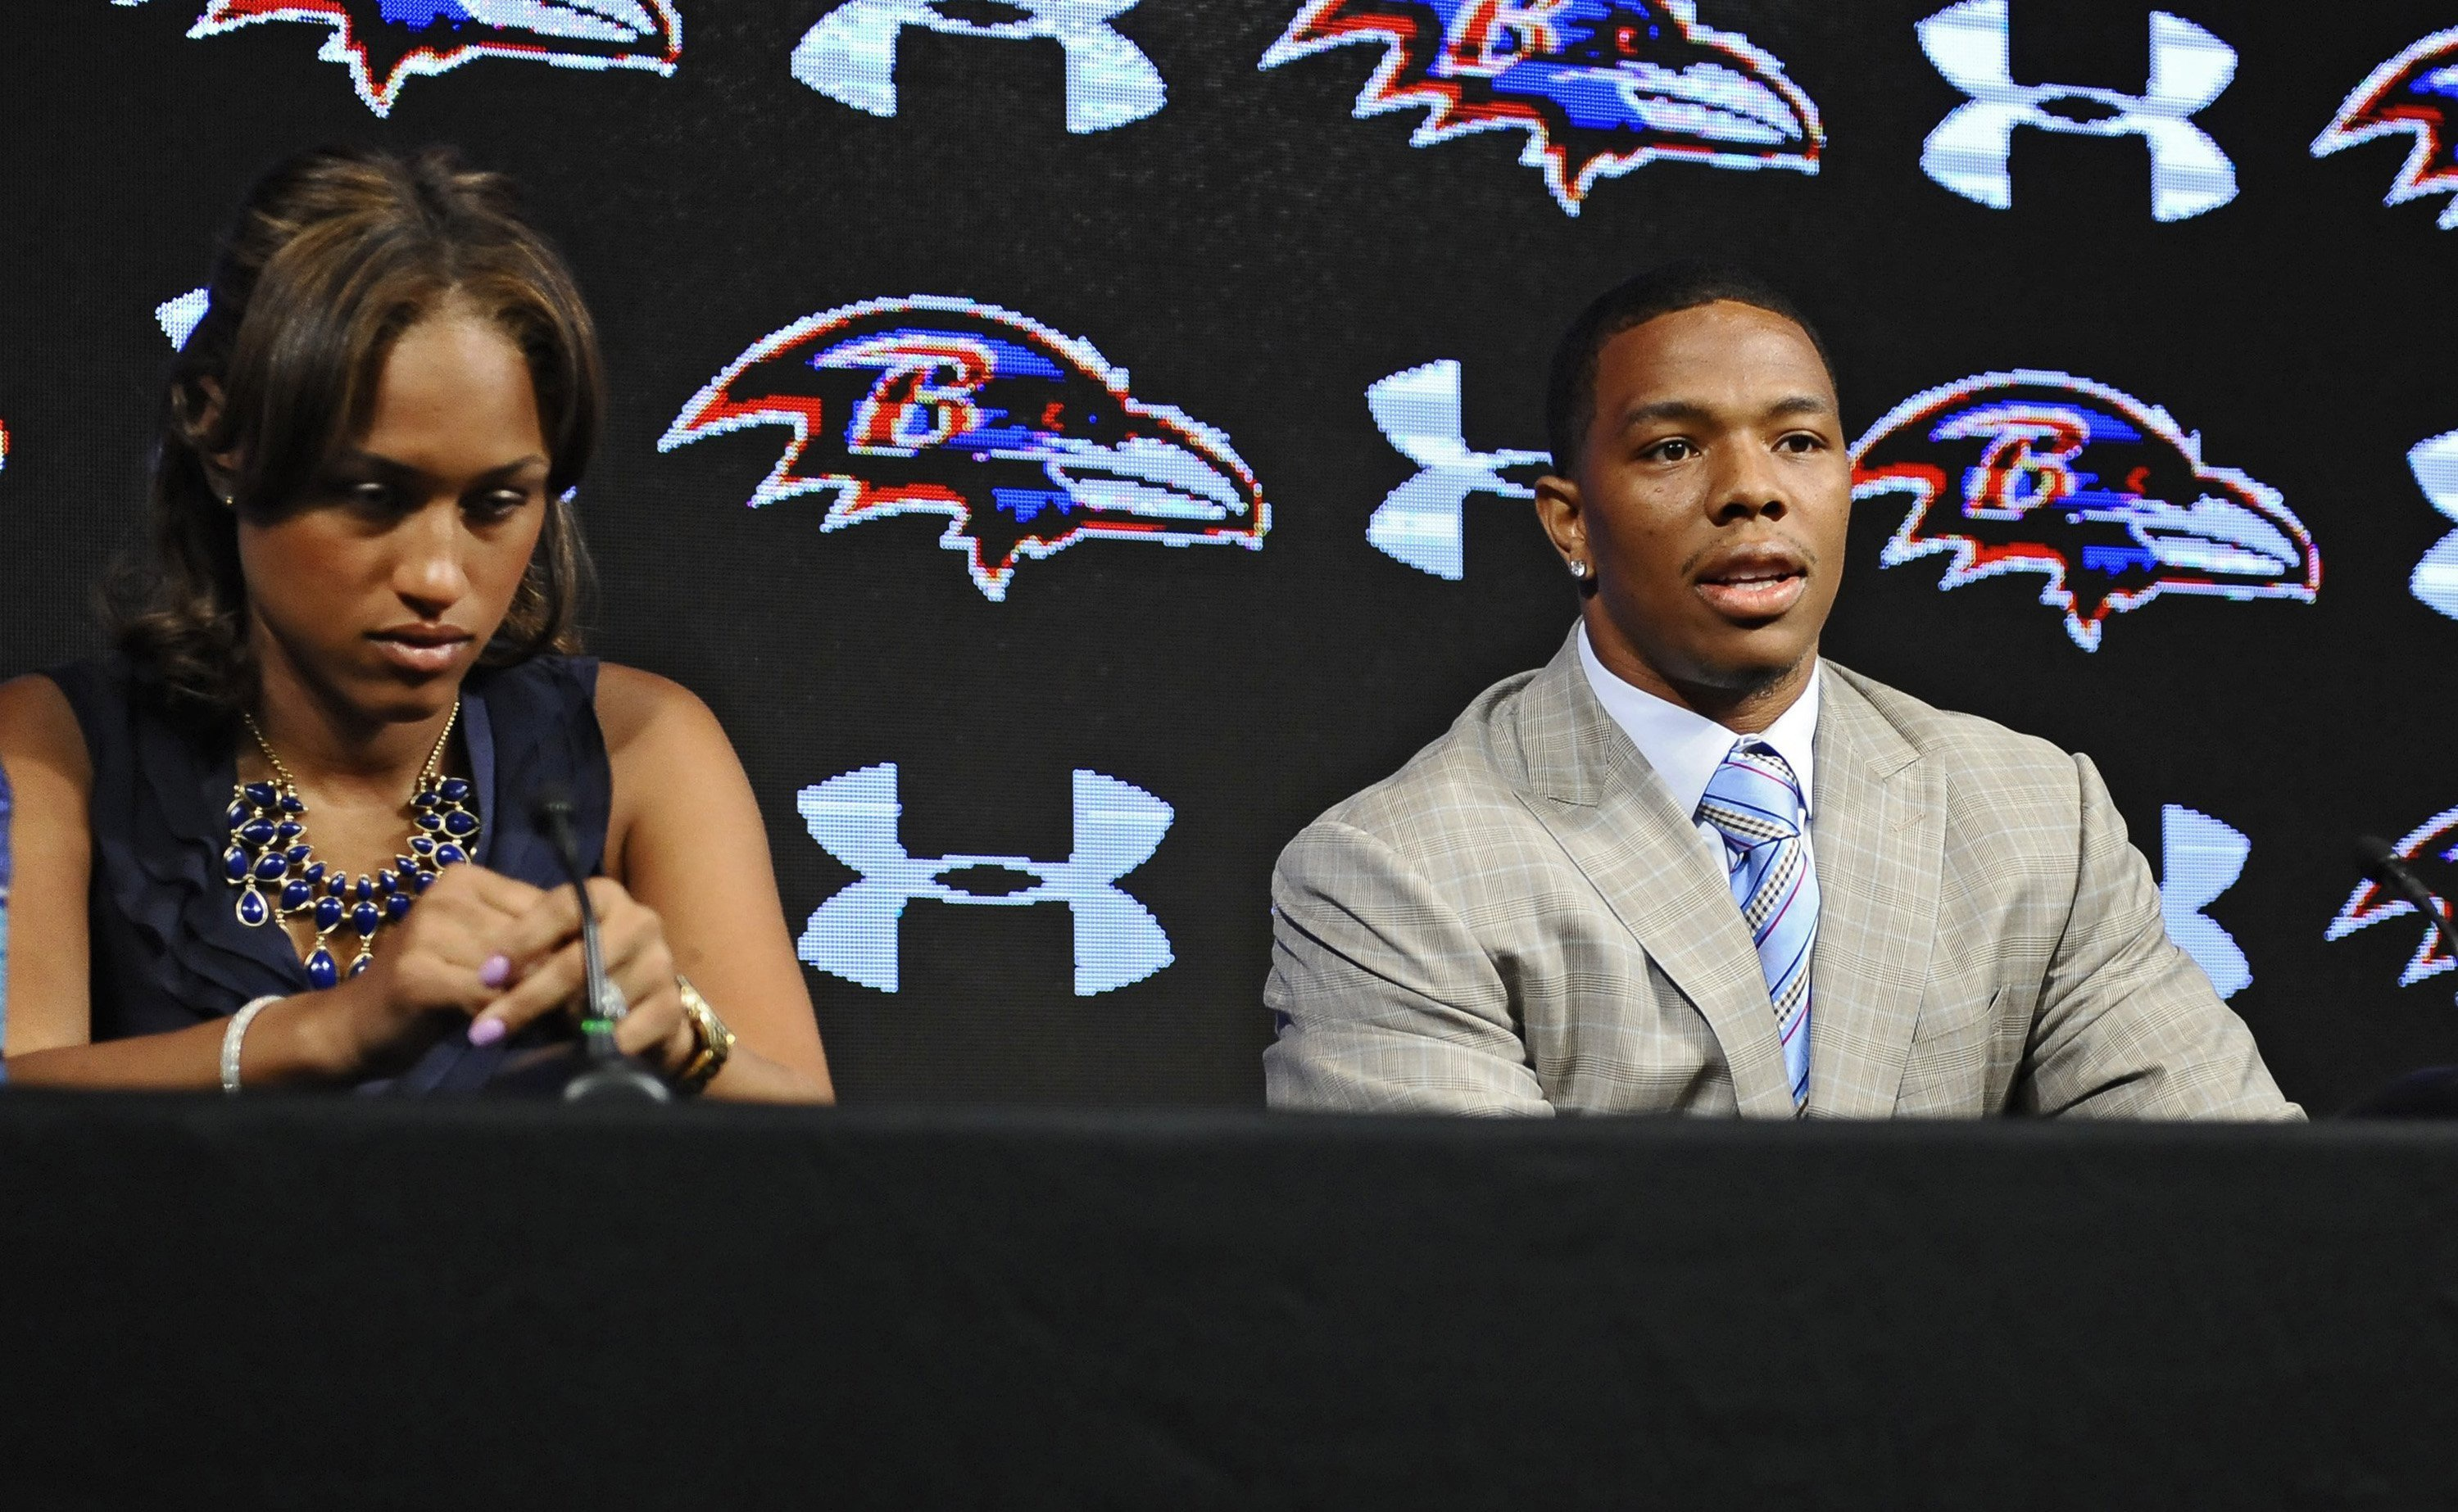 Ravens running back Ray Rice, right, and his wife Janay made statements to the news media regarding his assault charge for knocking her unconscious in a New Jersey casino, on May 5, 2014, at the Under Armour Performance Center in Owings Mills, Md.